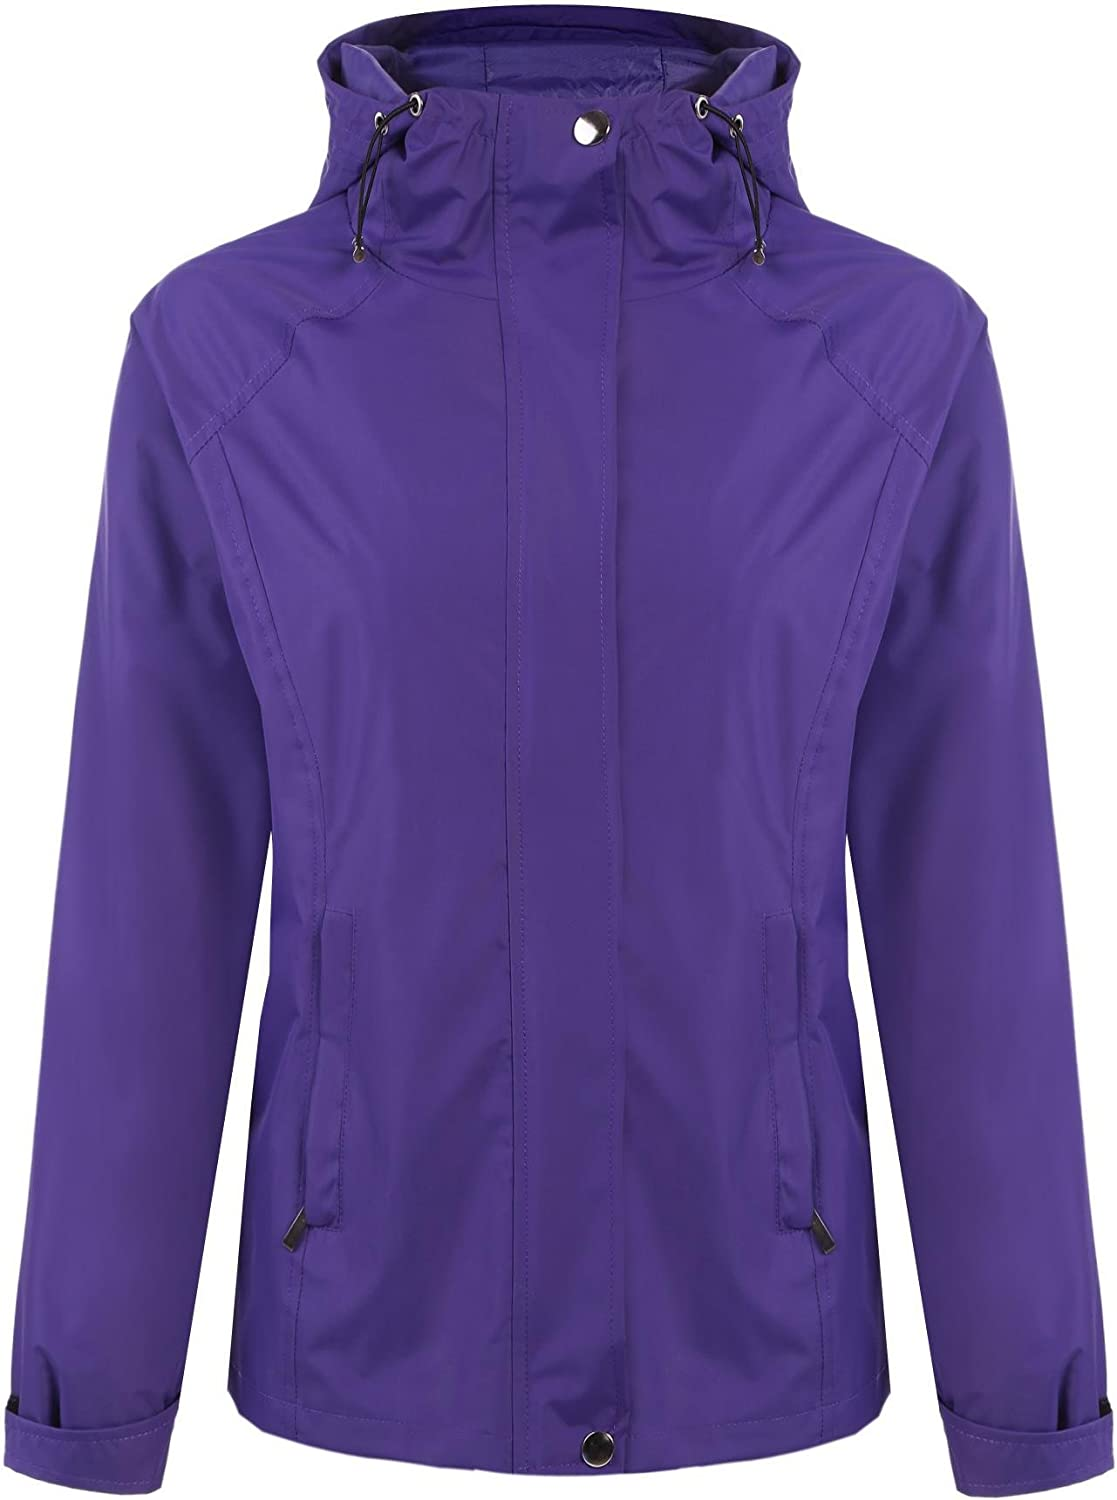 Elesol Women's Long Sleeve Zip Up Hoodie Waterproof Rain Jacket Venture Jacket